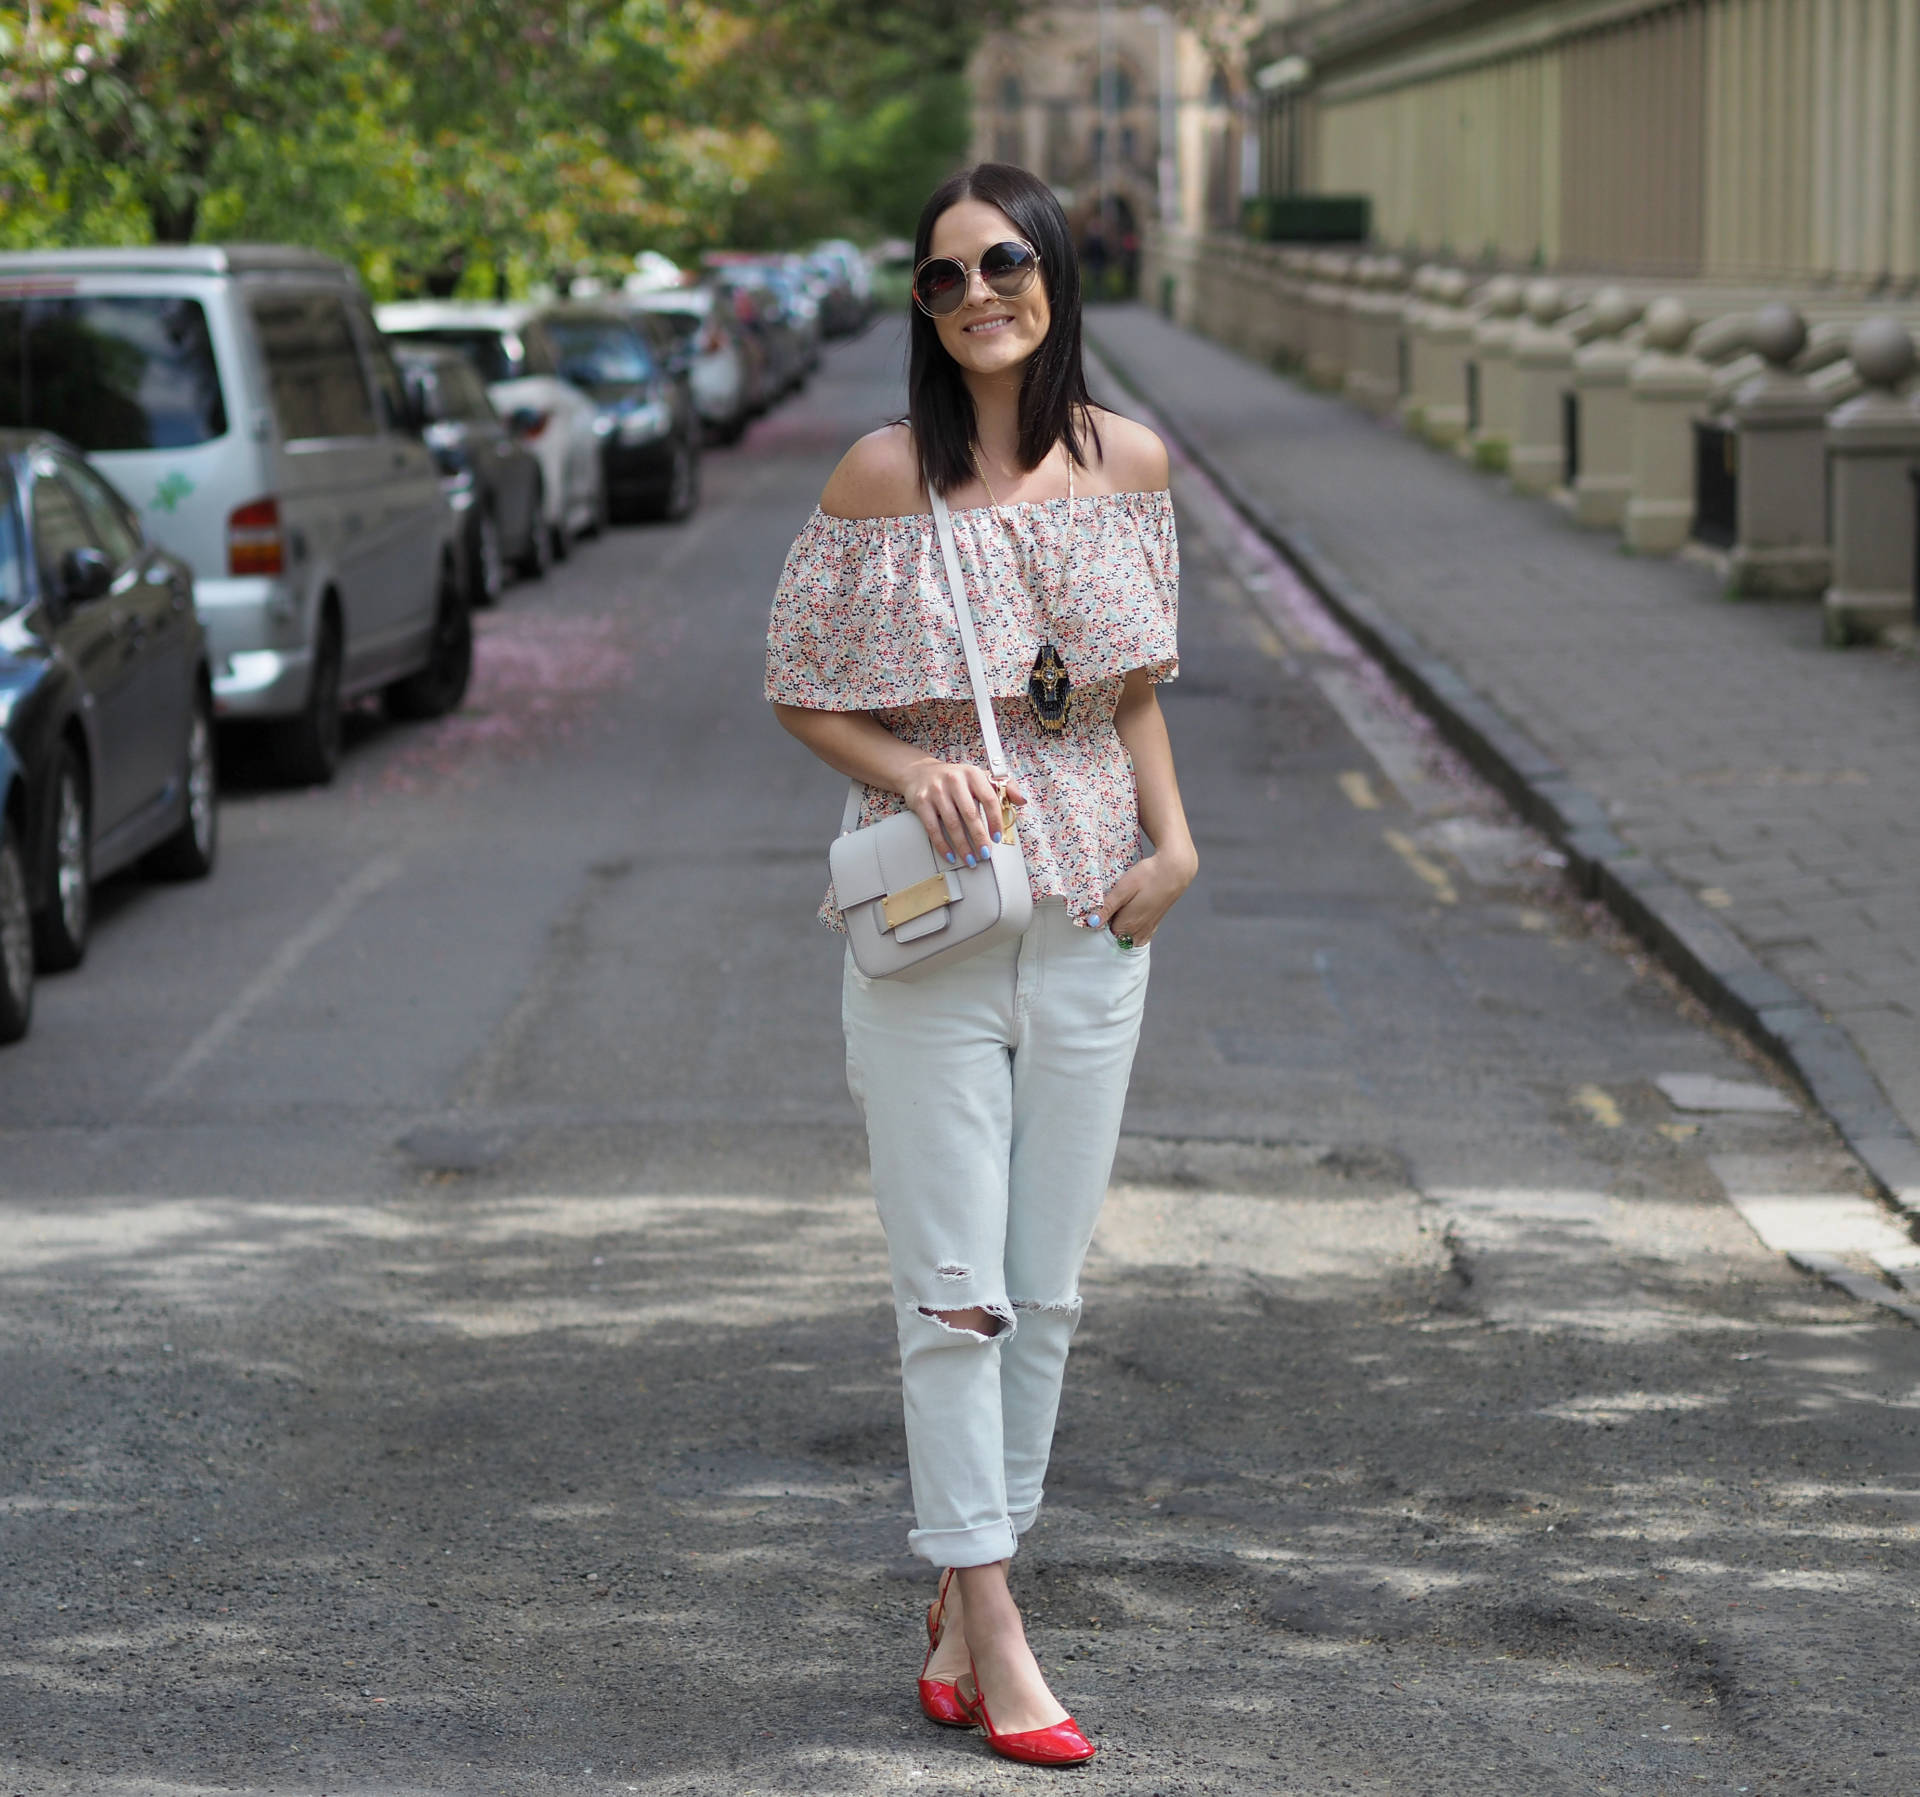 Off the Shoulder top styling - LAFOTKA Fashion Blogger